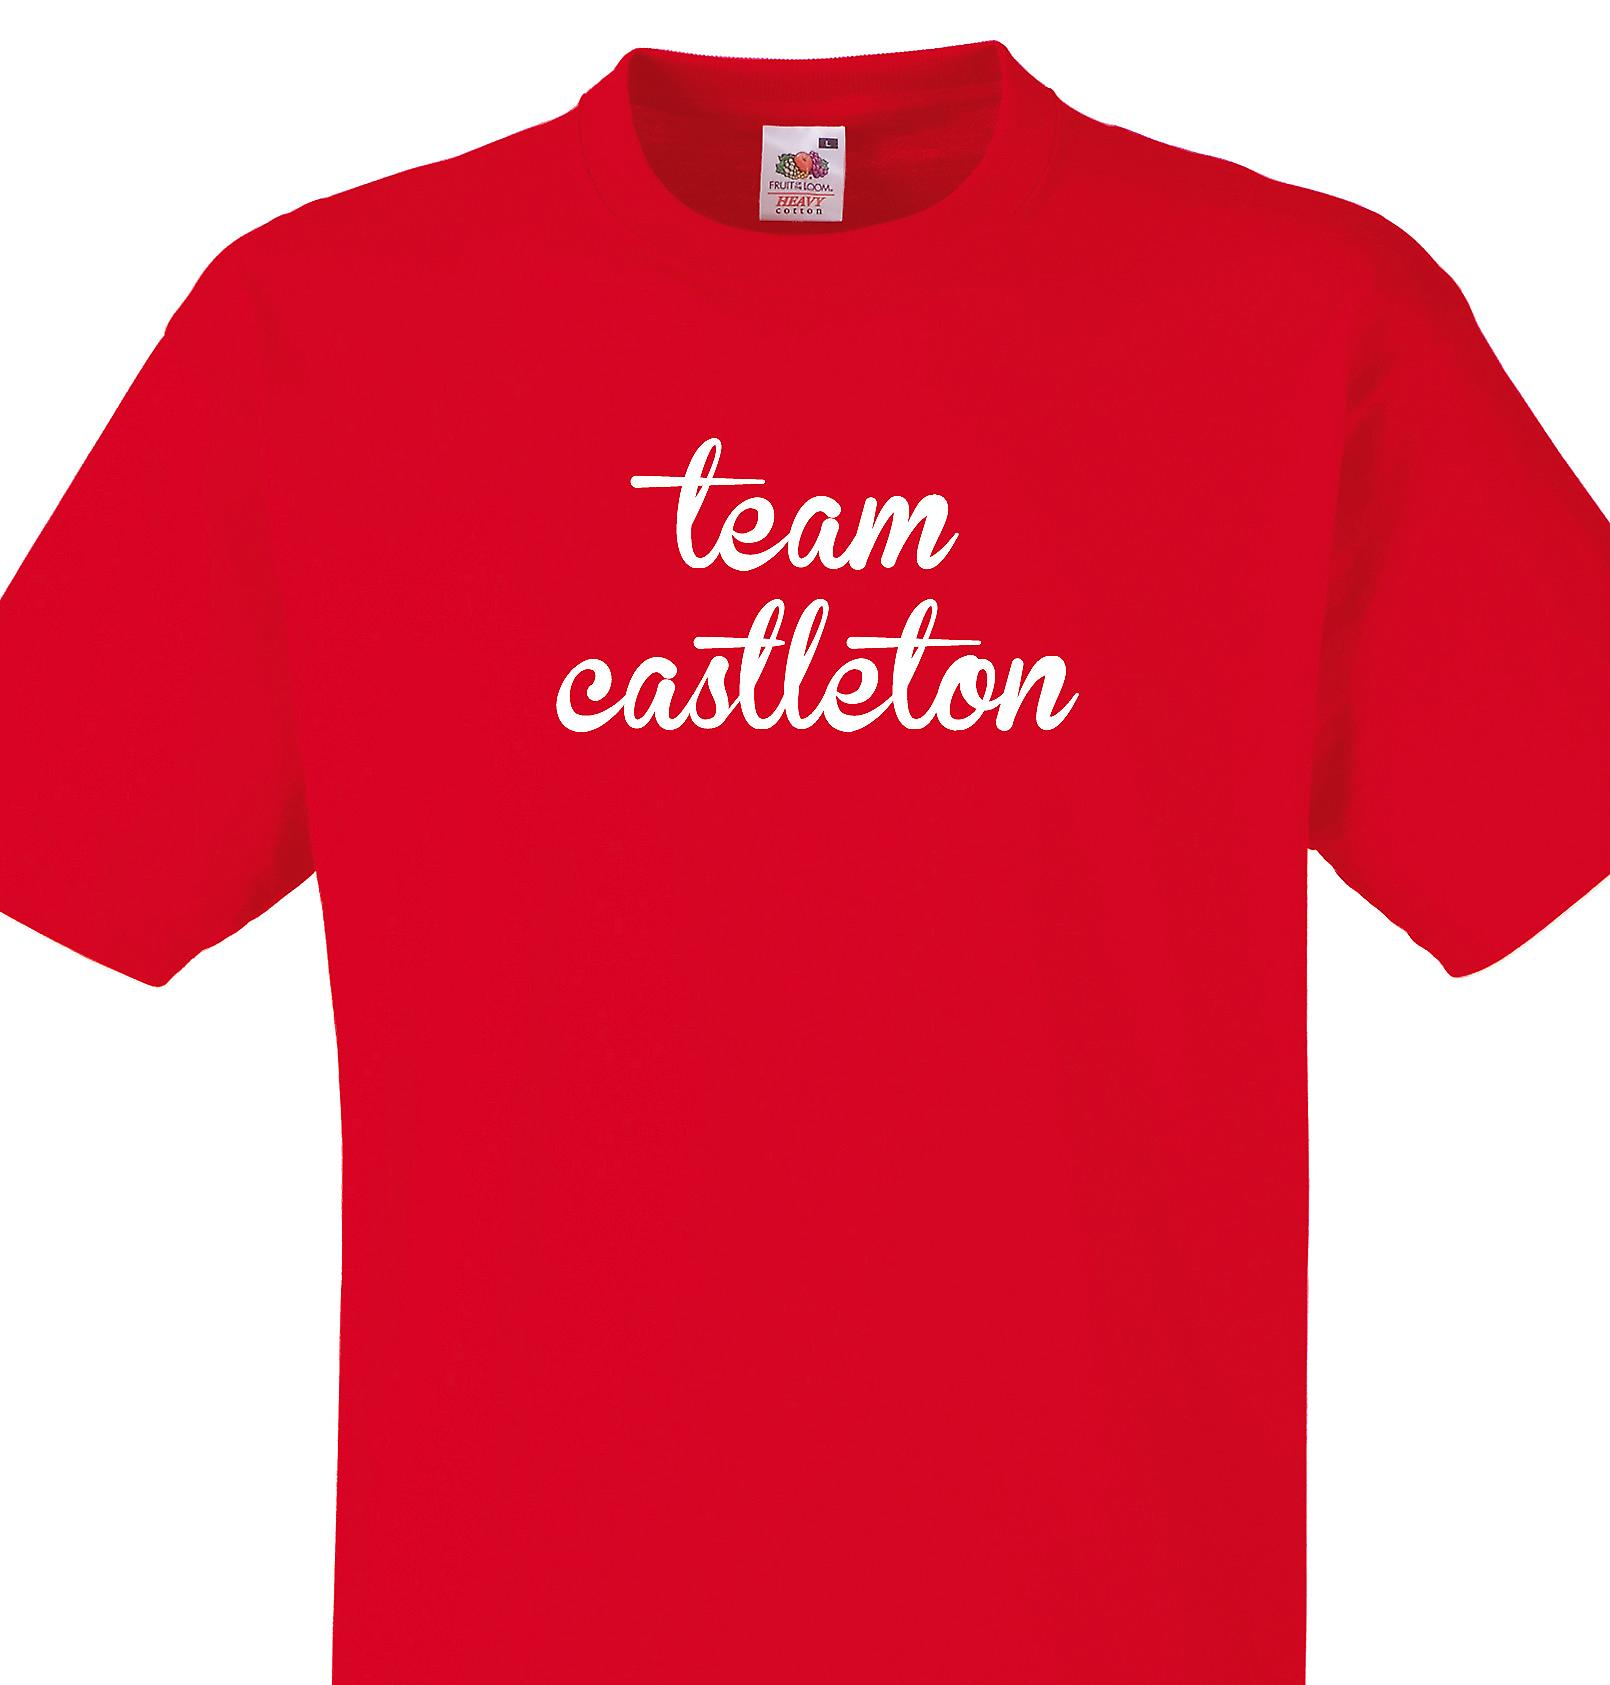 Team Castleton Red T shirt